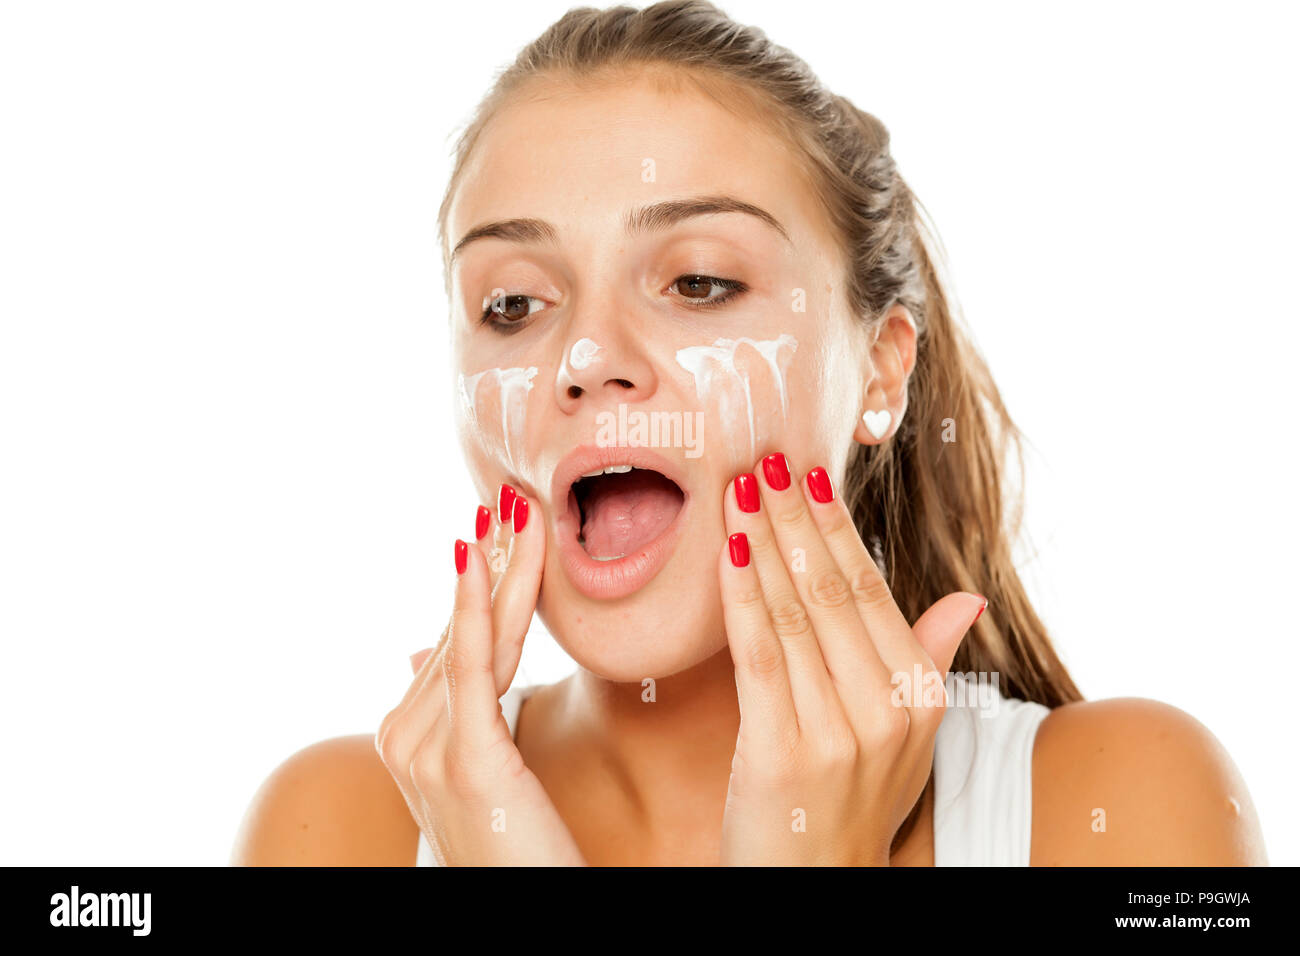 young woman applying cream to her face - Stock Image